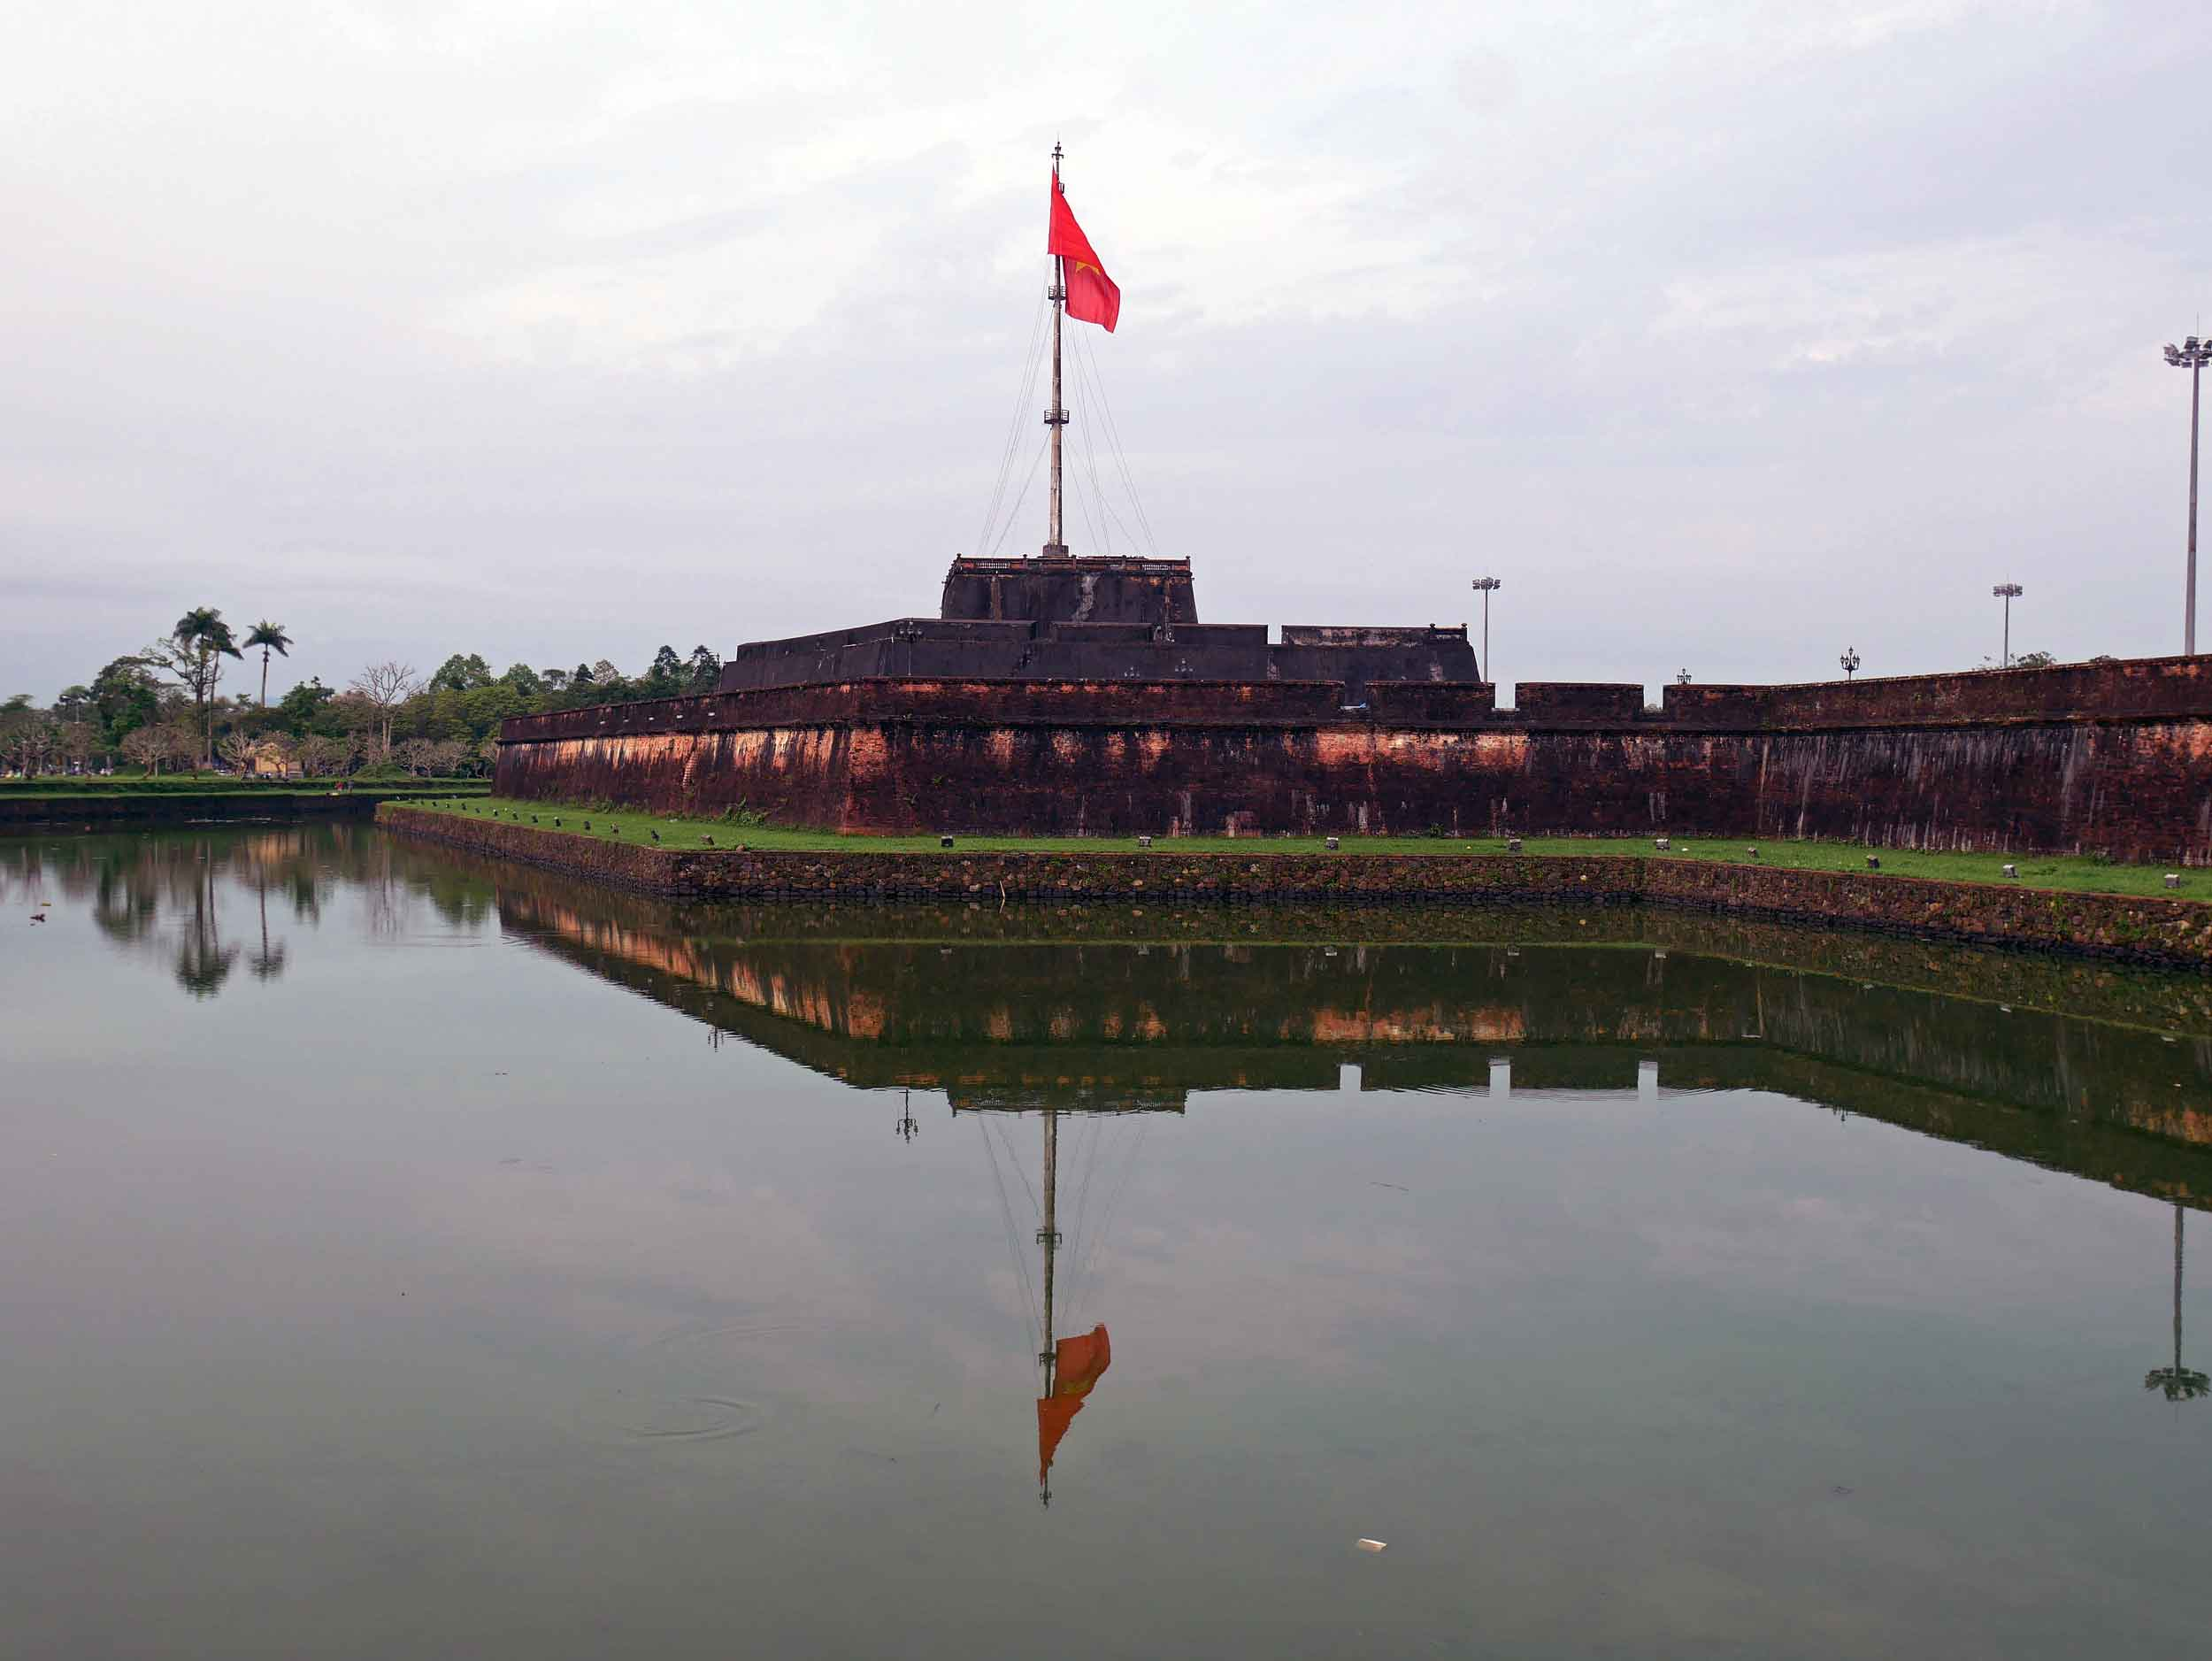 We spent the next day exploring the Hue Imperial City, inside of the massive Citadel (March 19).